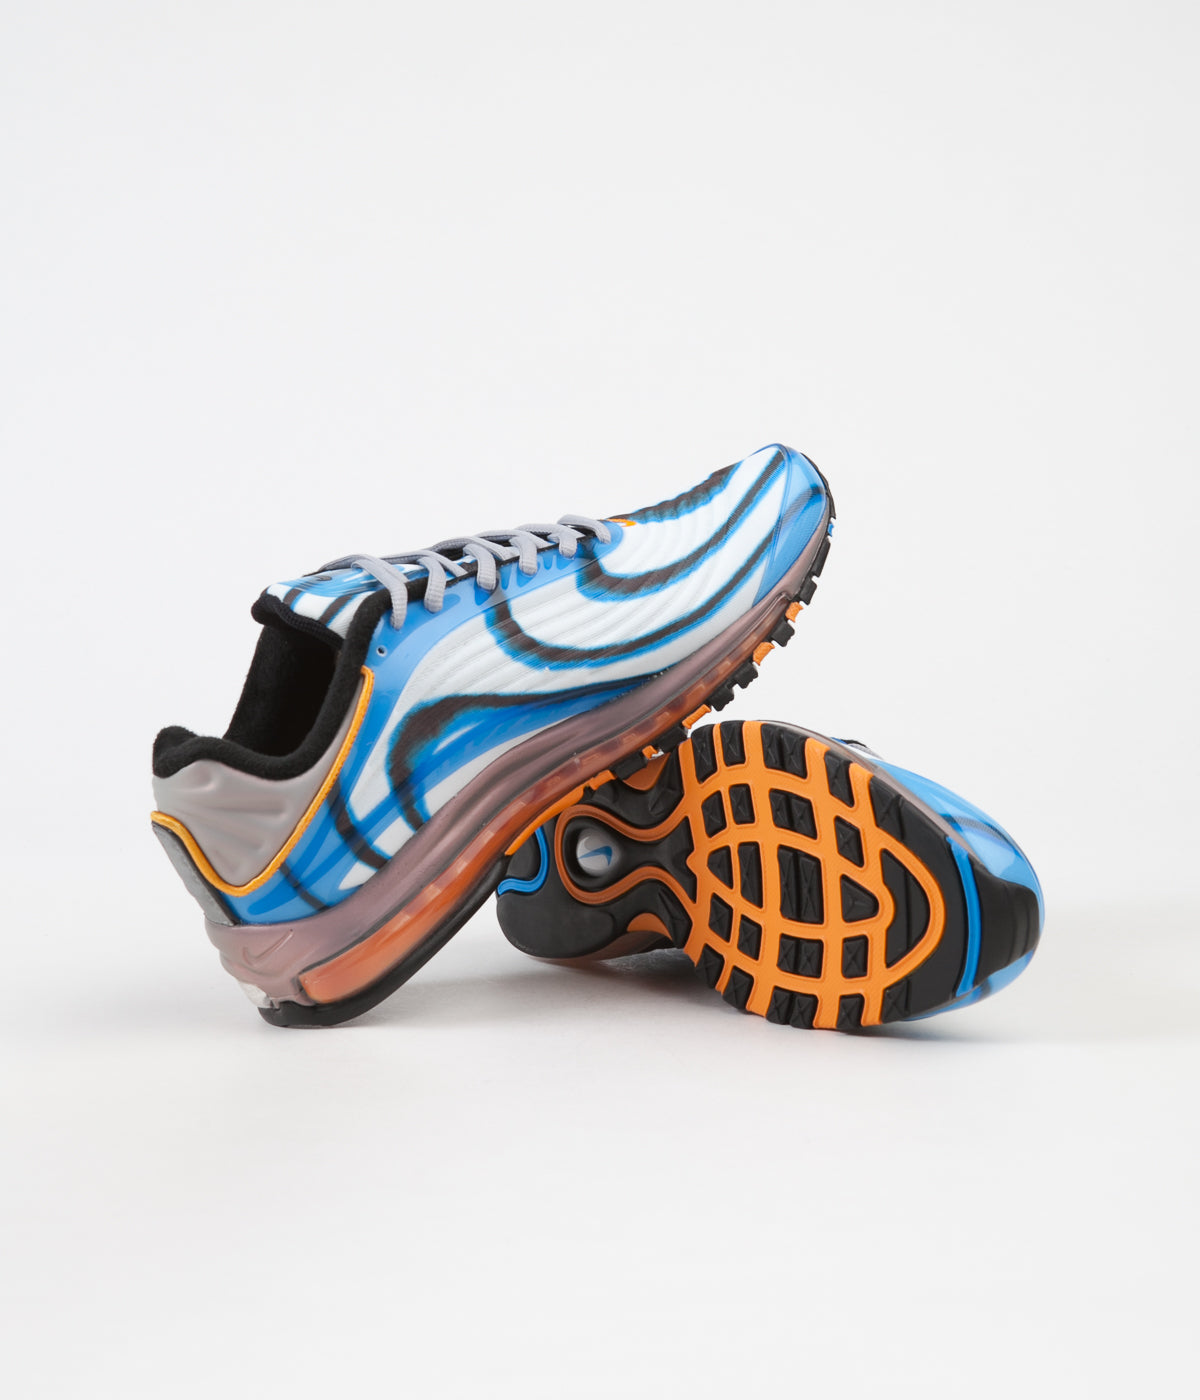 ... Nike Air Max Deluxe Shoes - Photo Blue   Wolf Grey - Orange Peel -  Black ... e4ba6bff3bc19